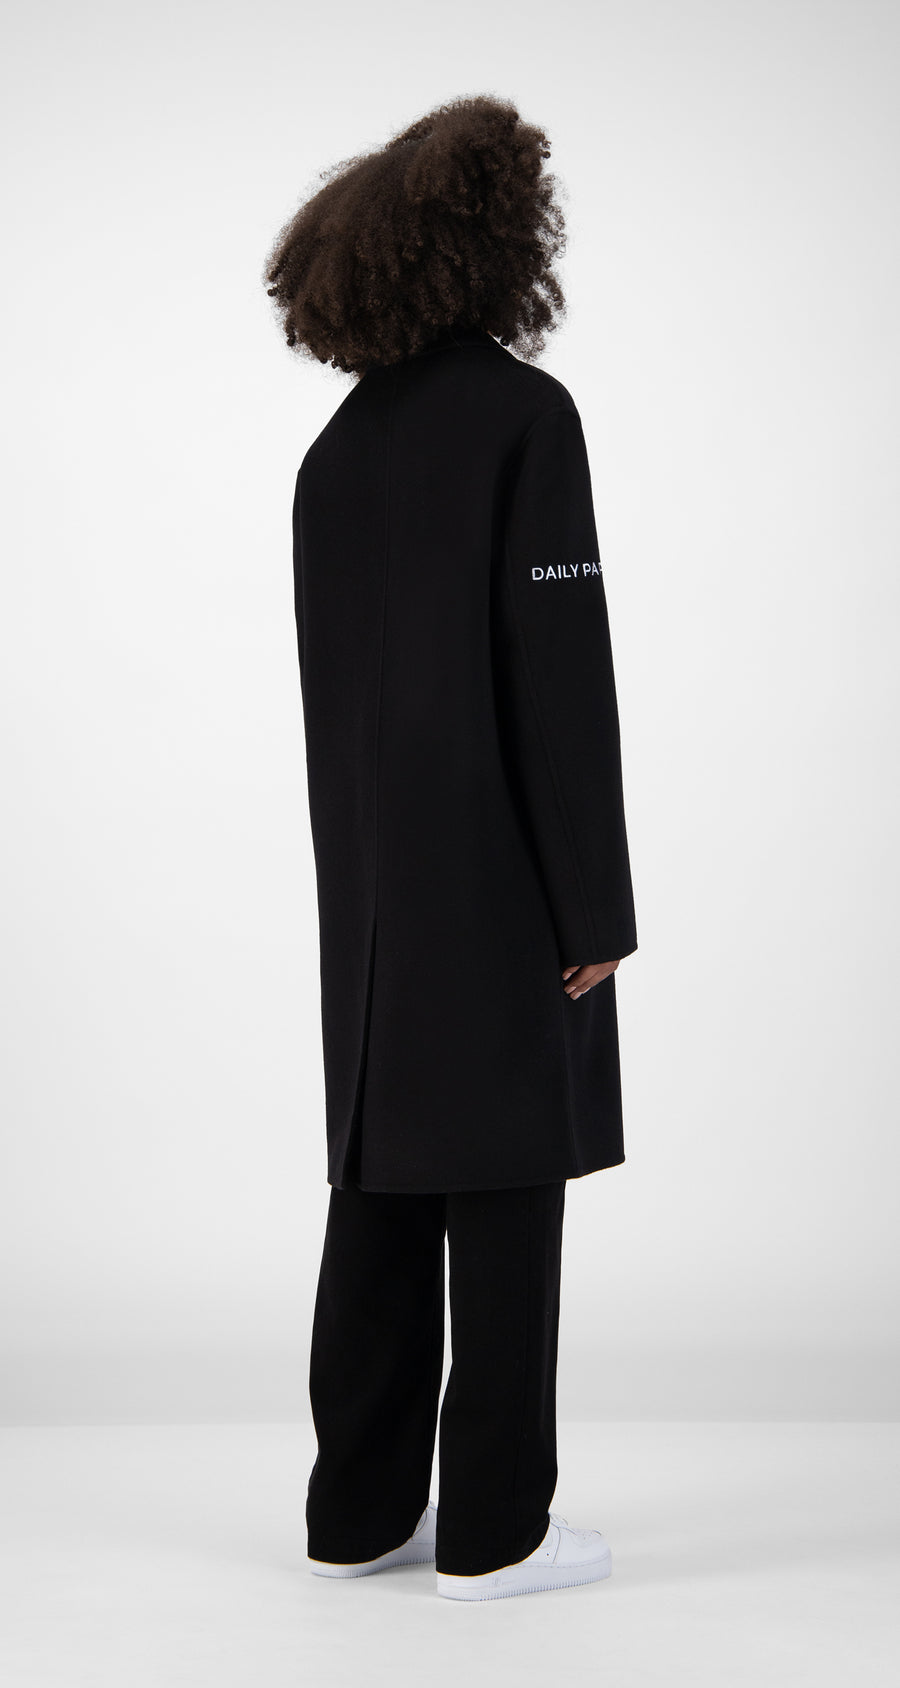 Daily Paper - Black Wool Captain Coat Women Rear